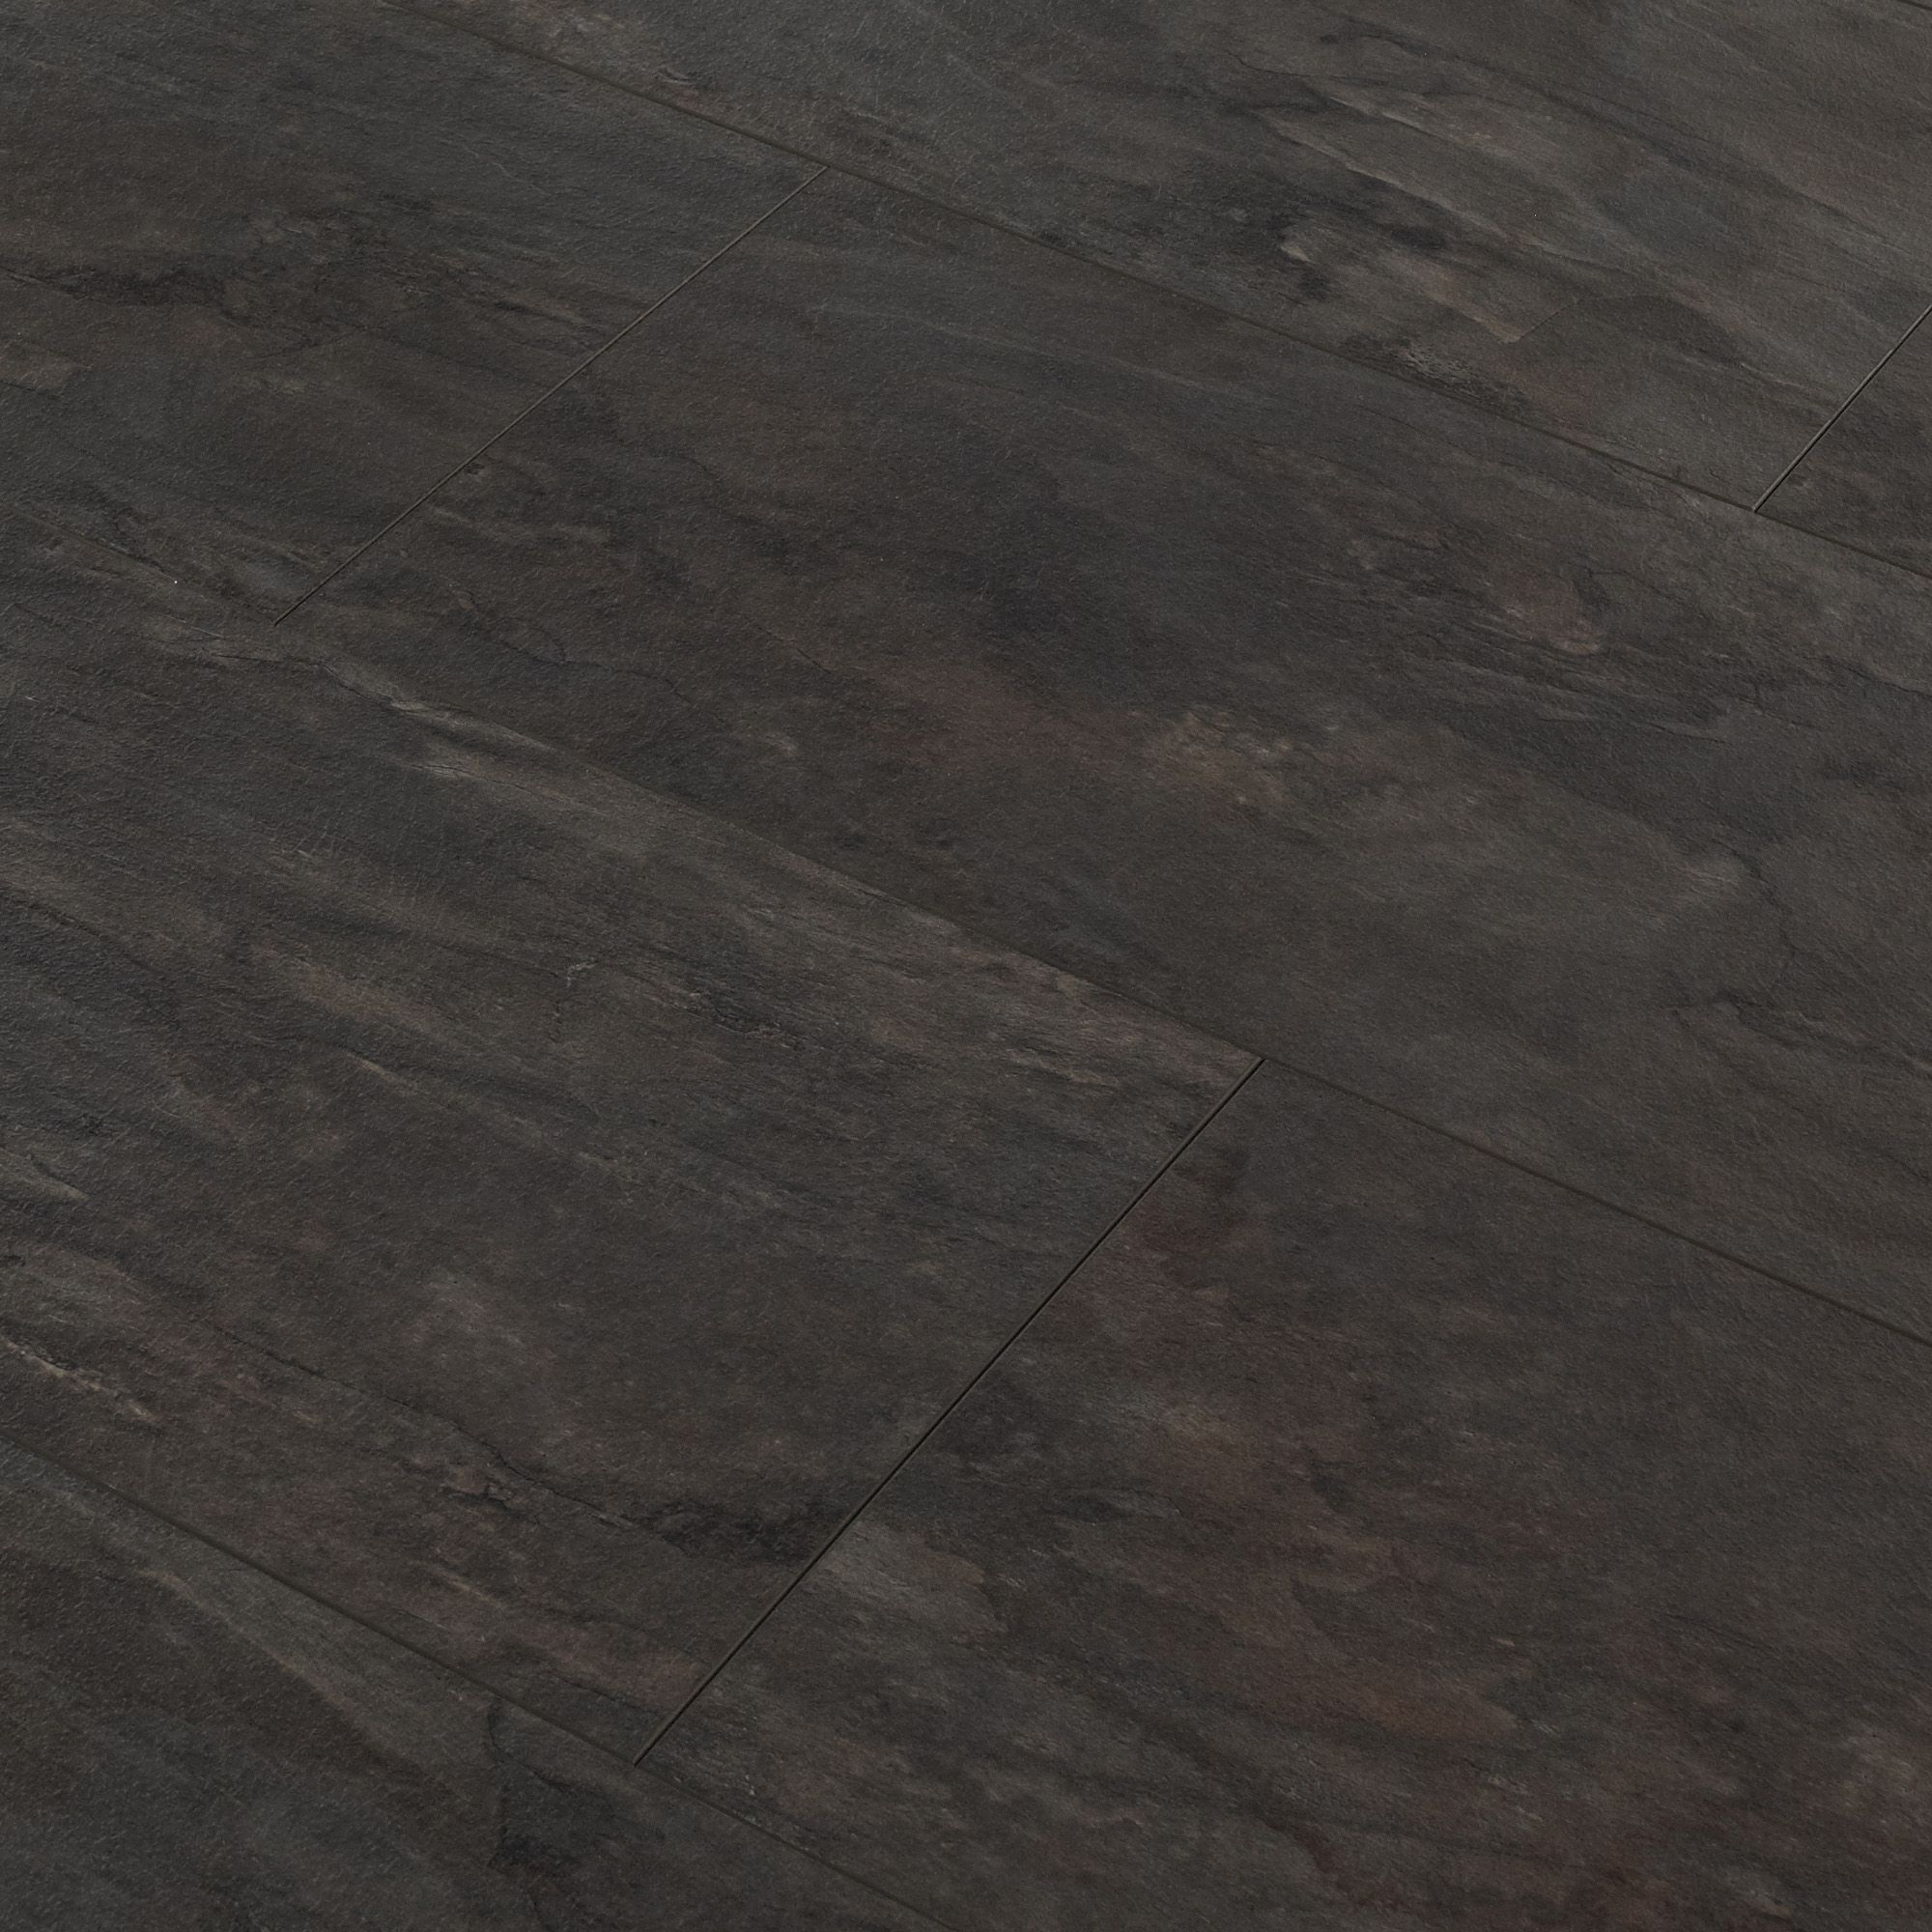 Slate Laminate Flooring : Intermezzo grey slate effect laminate flooring m²